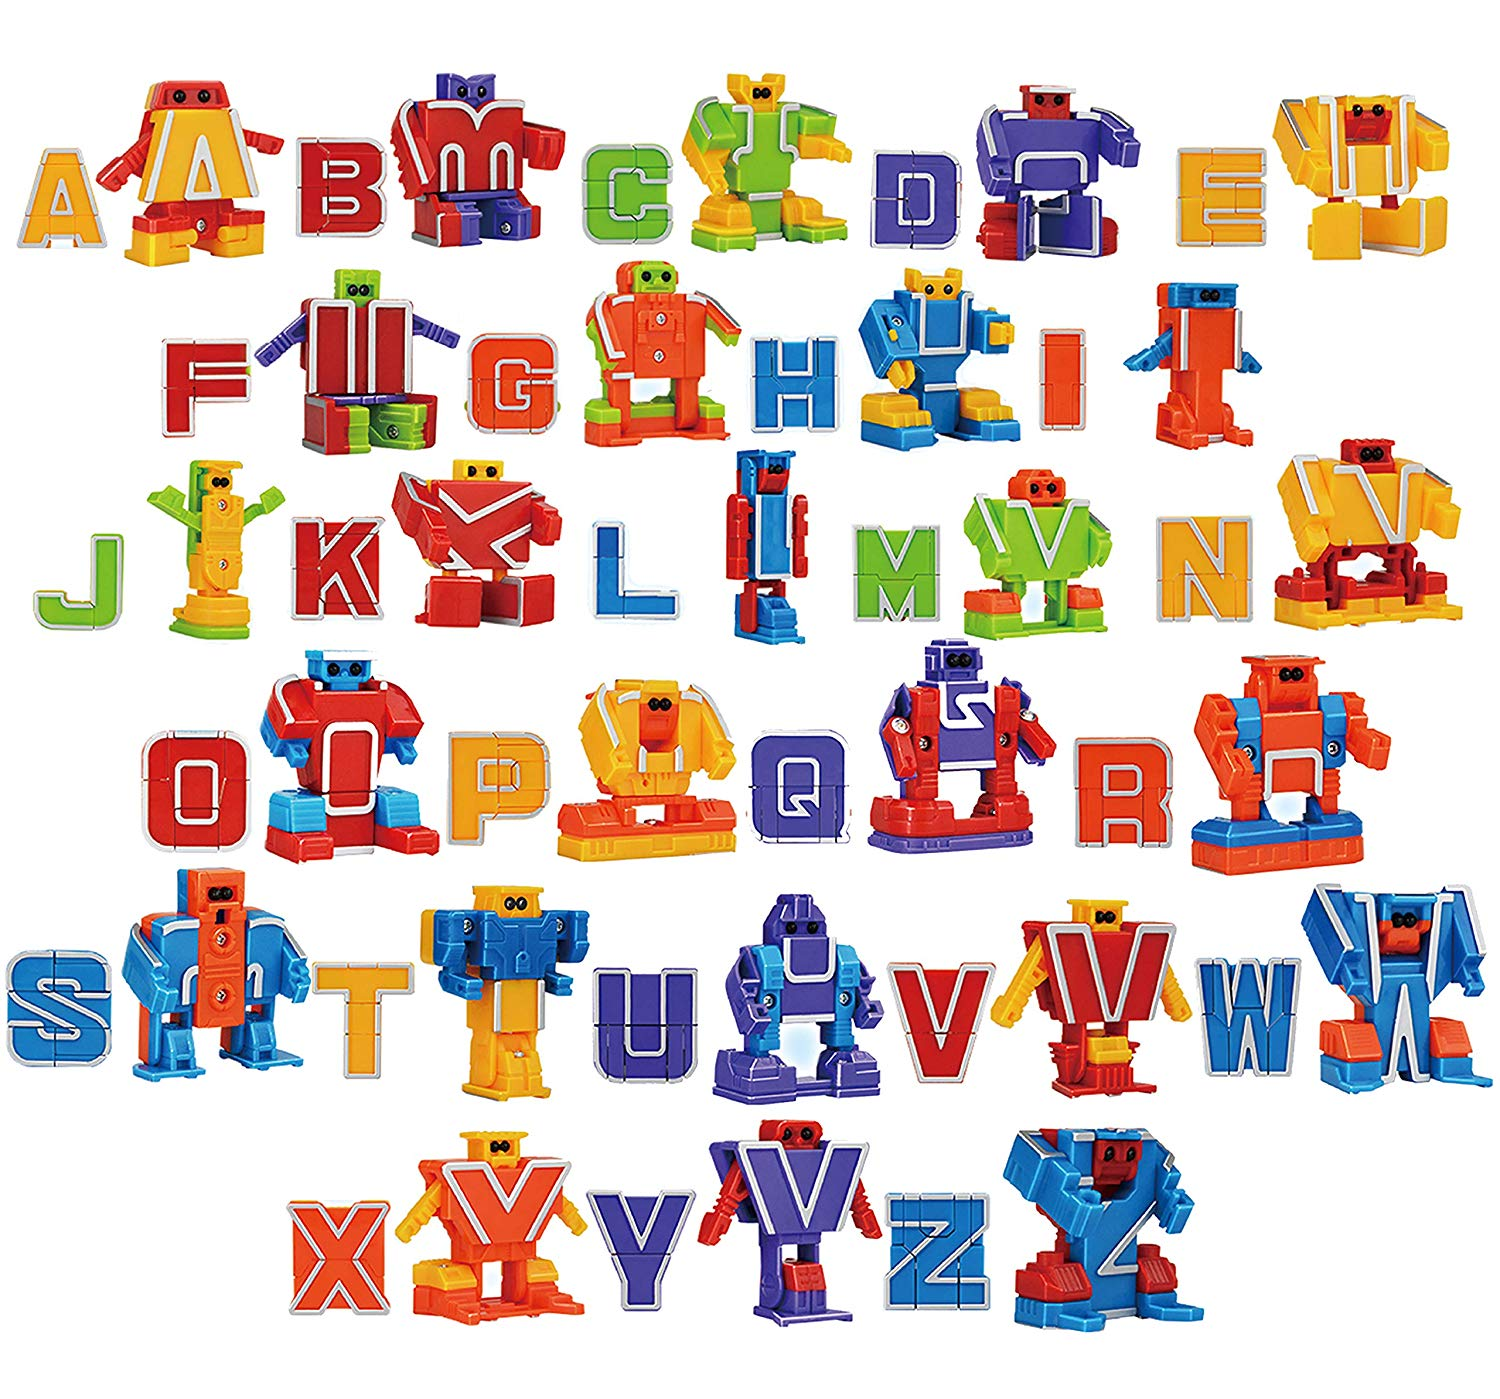 Alphabet Robot Action Figure Toys